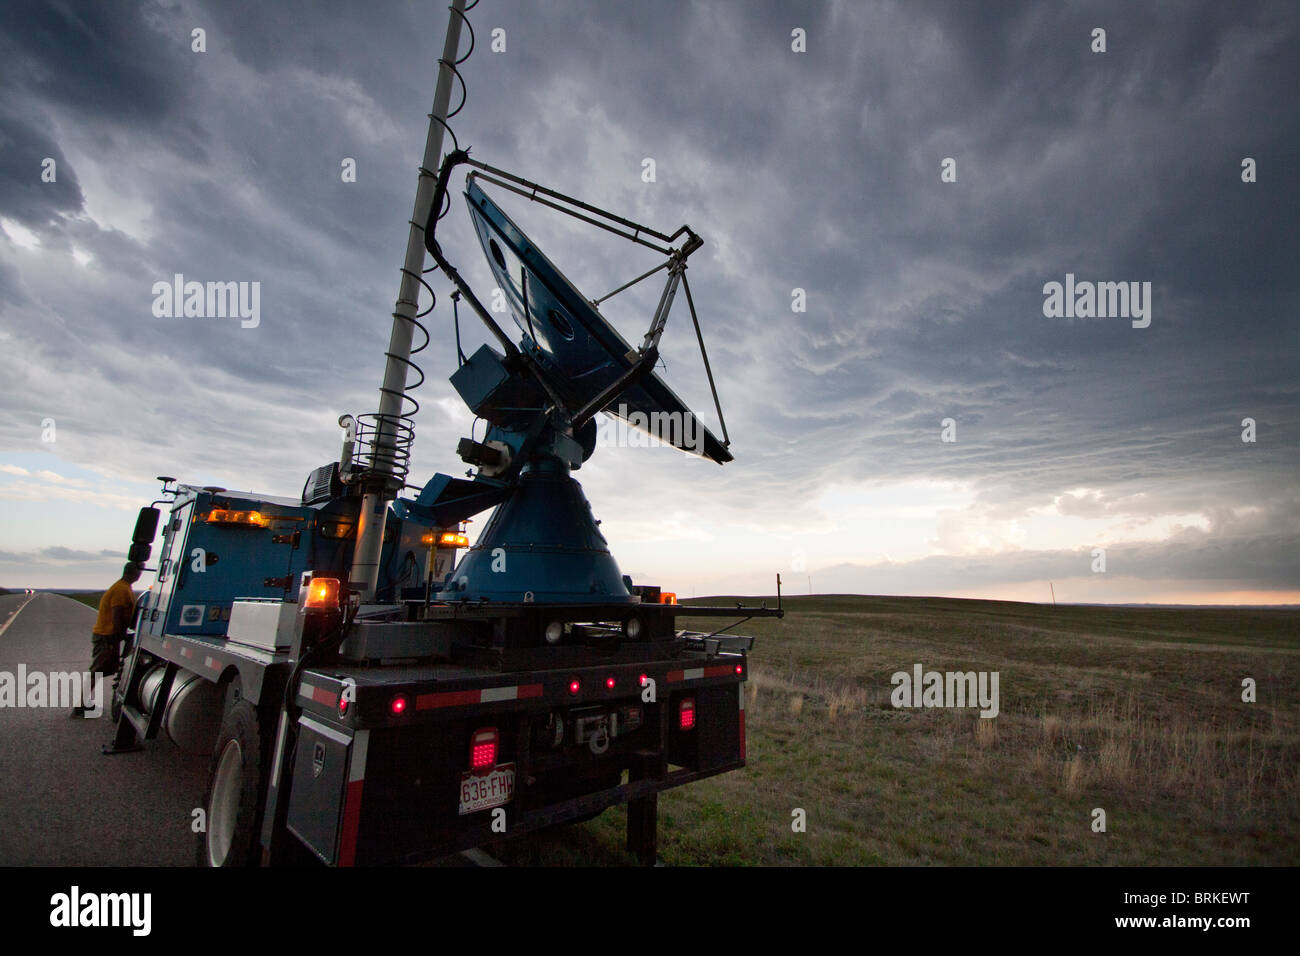 A Doppler on Wheels truck scans a supercellular thunderstorm in rural Wyoming, May 21, 2010. - Stock Image